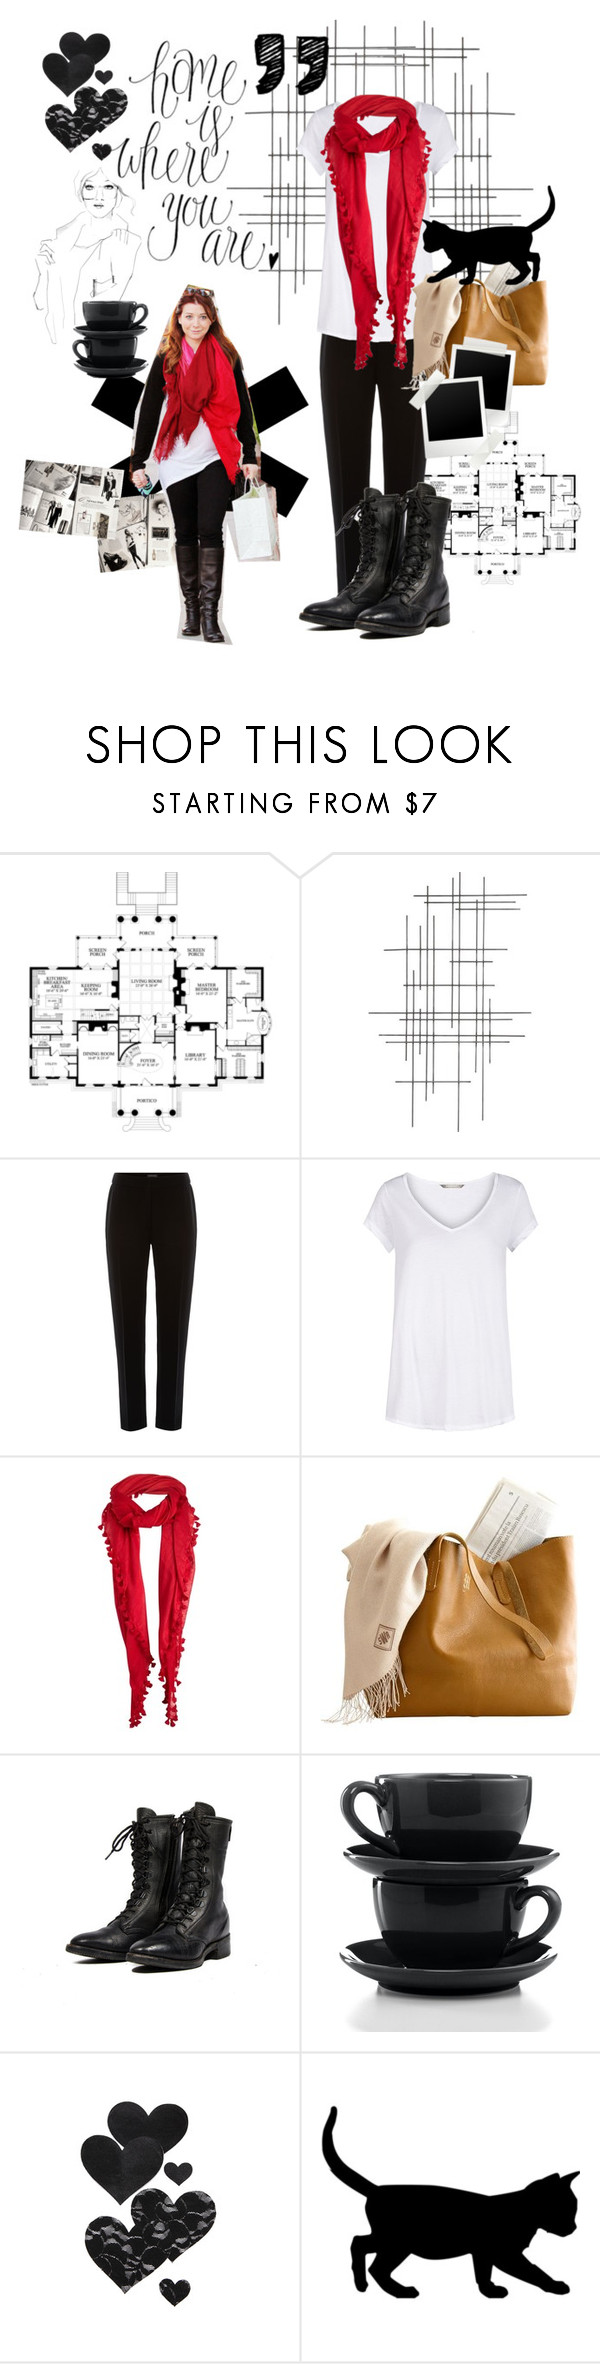 """""""kaitlyn jude driscoll."""" by thepriceofevol ❤ liked on Polyvore featuring Crate and Barrel, Pied a Terre, Sandwich, Jigsaw, Harley-Davidson, Garance Doré, Certified International, Bristols6, women's clothing and women's fashion"""